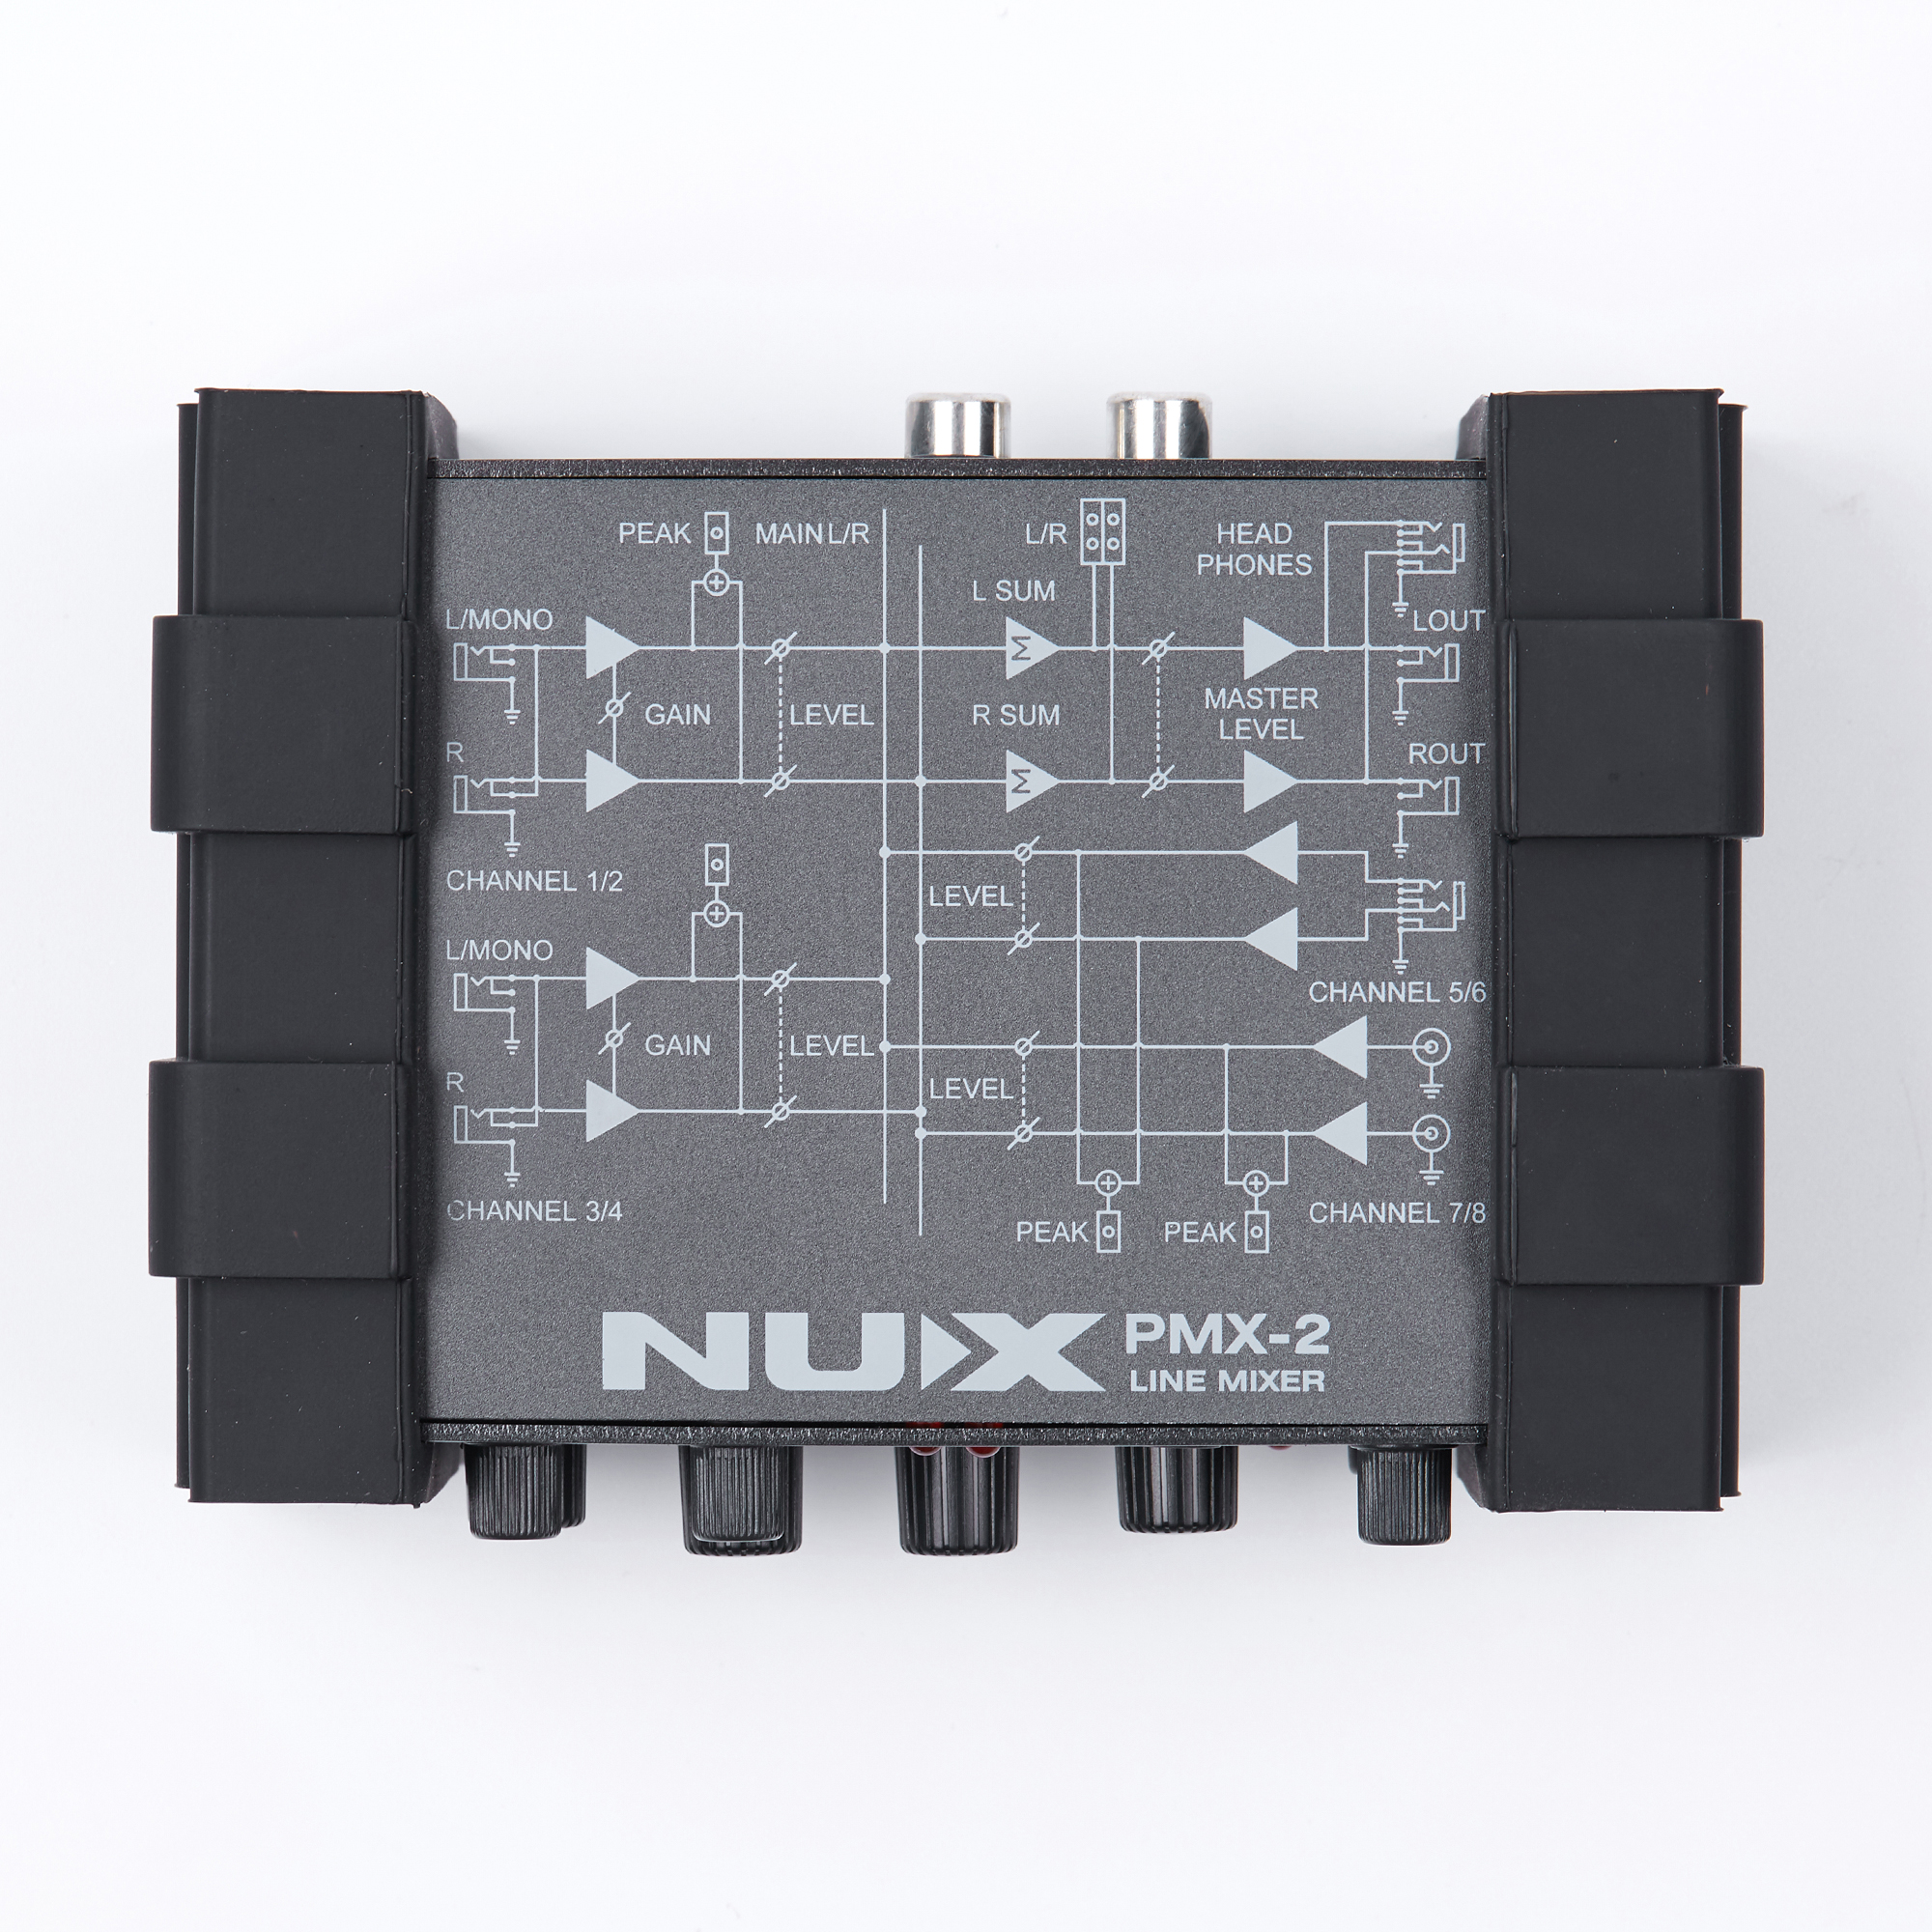 Gain Control 8 Inputs and 2 Outputs NUX PMX-2 Multi-Channel Mini Mixer 30 Musical Instruments Accessories for Guitar Bass Player ноутбук acer aspire e5 573 314h nx mvher 074 nx mvher 074